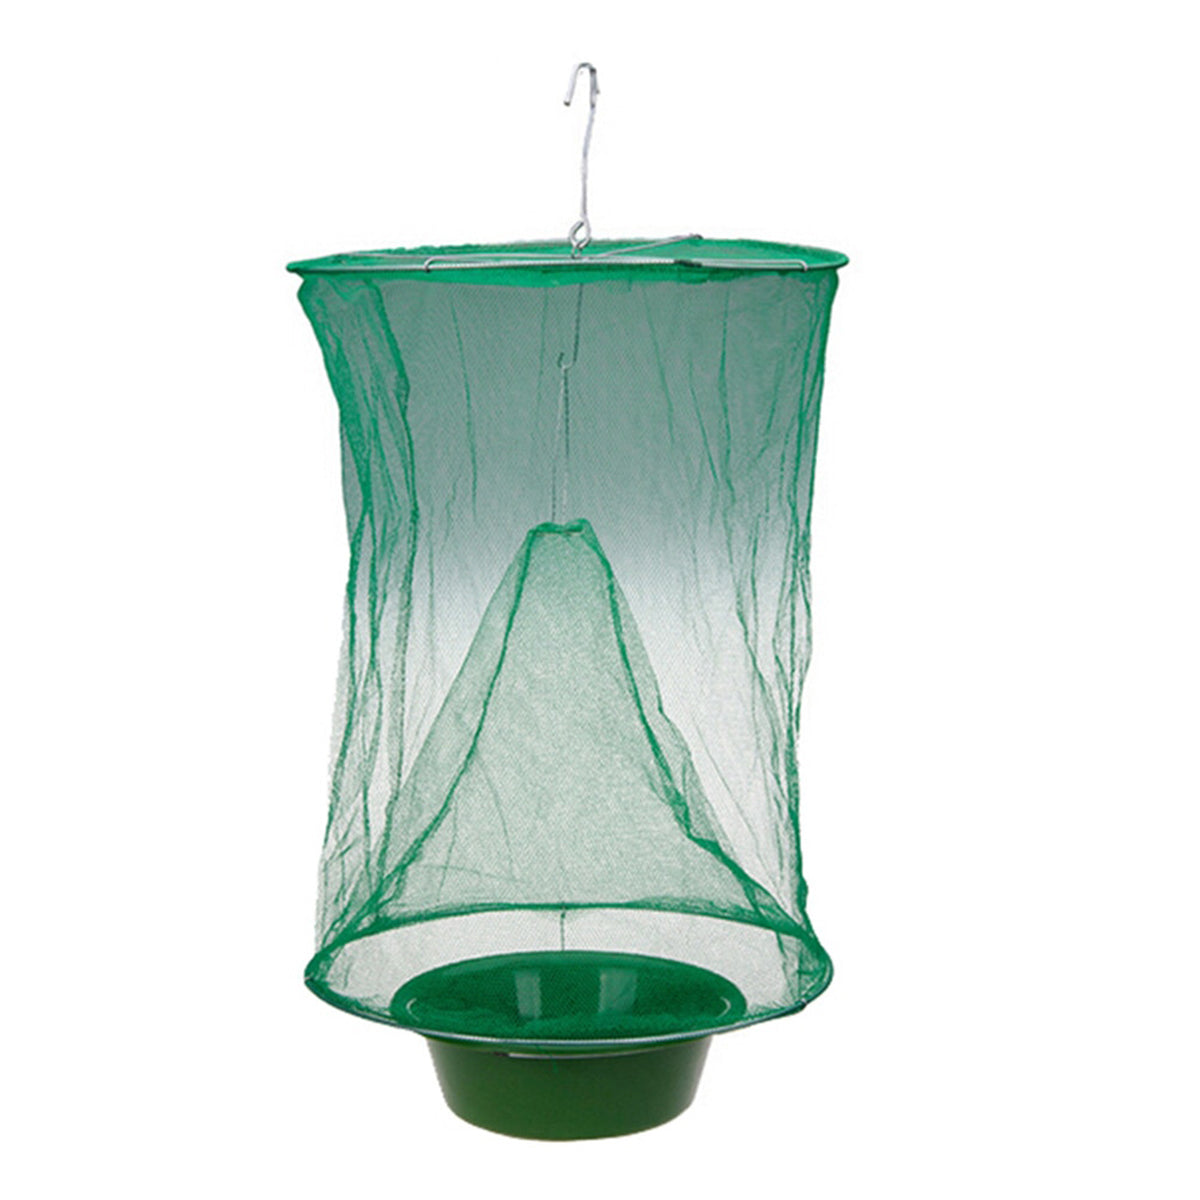 1PCS/lot Reusable Hanging Fly Catcher for Pest Control in Garden